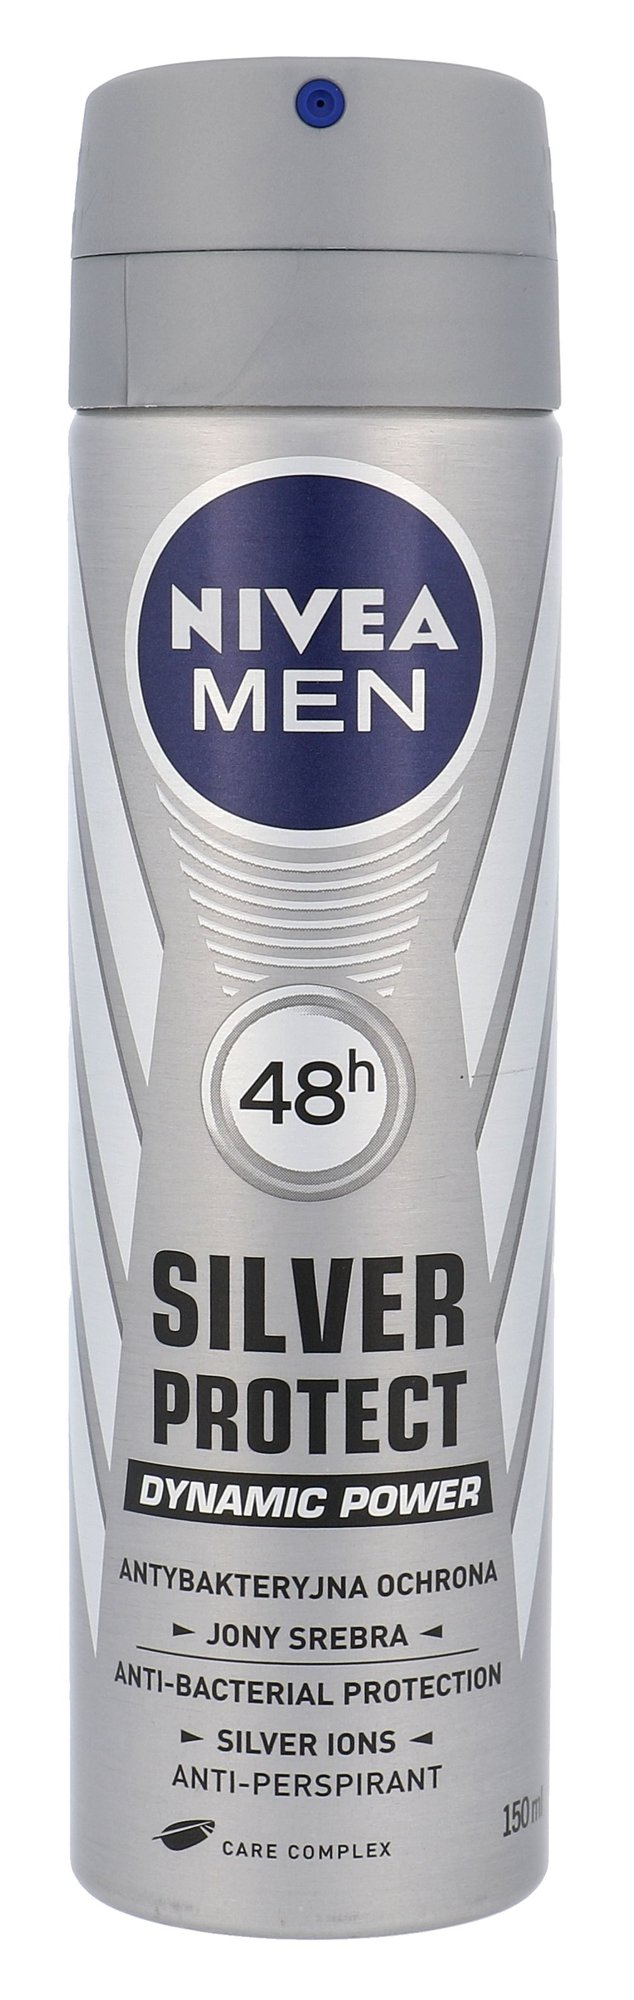 Nivea Men Silver Protect Cosmetic 150ml